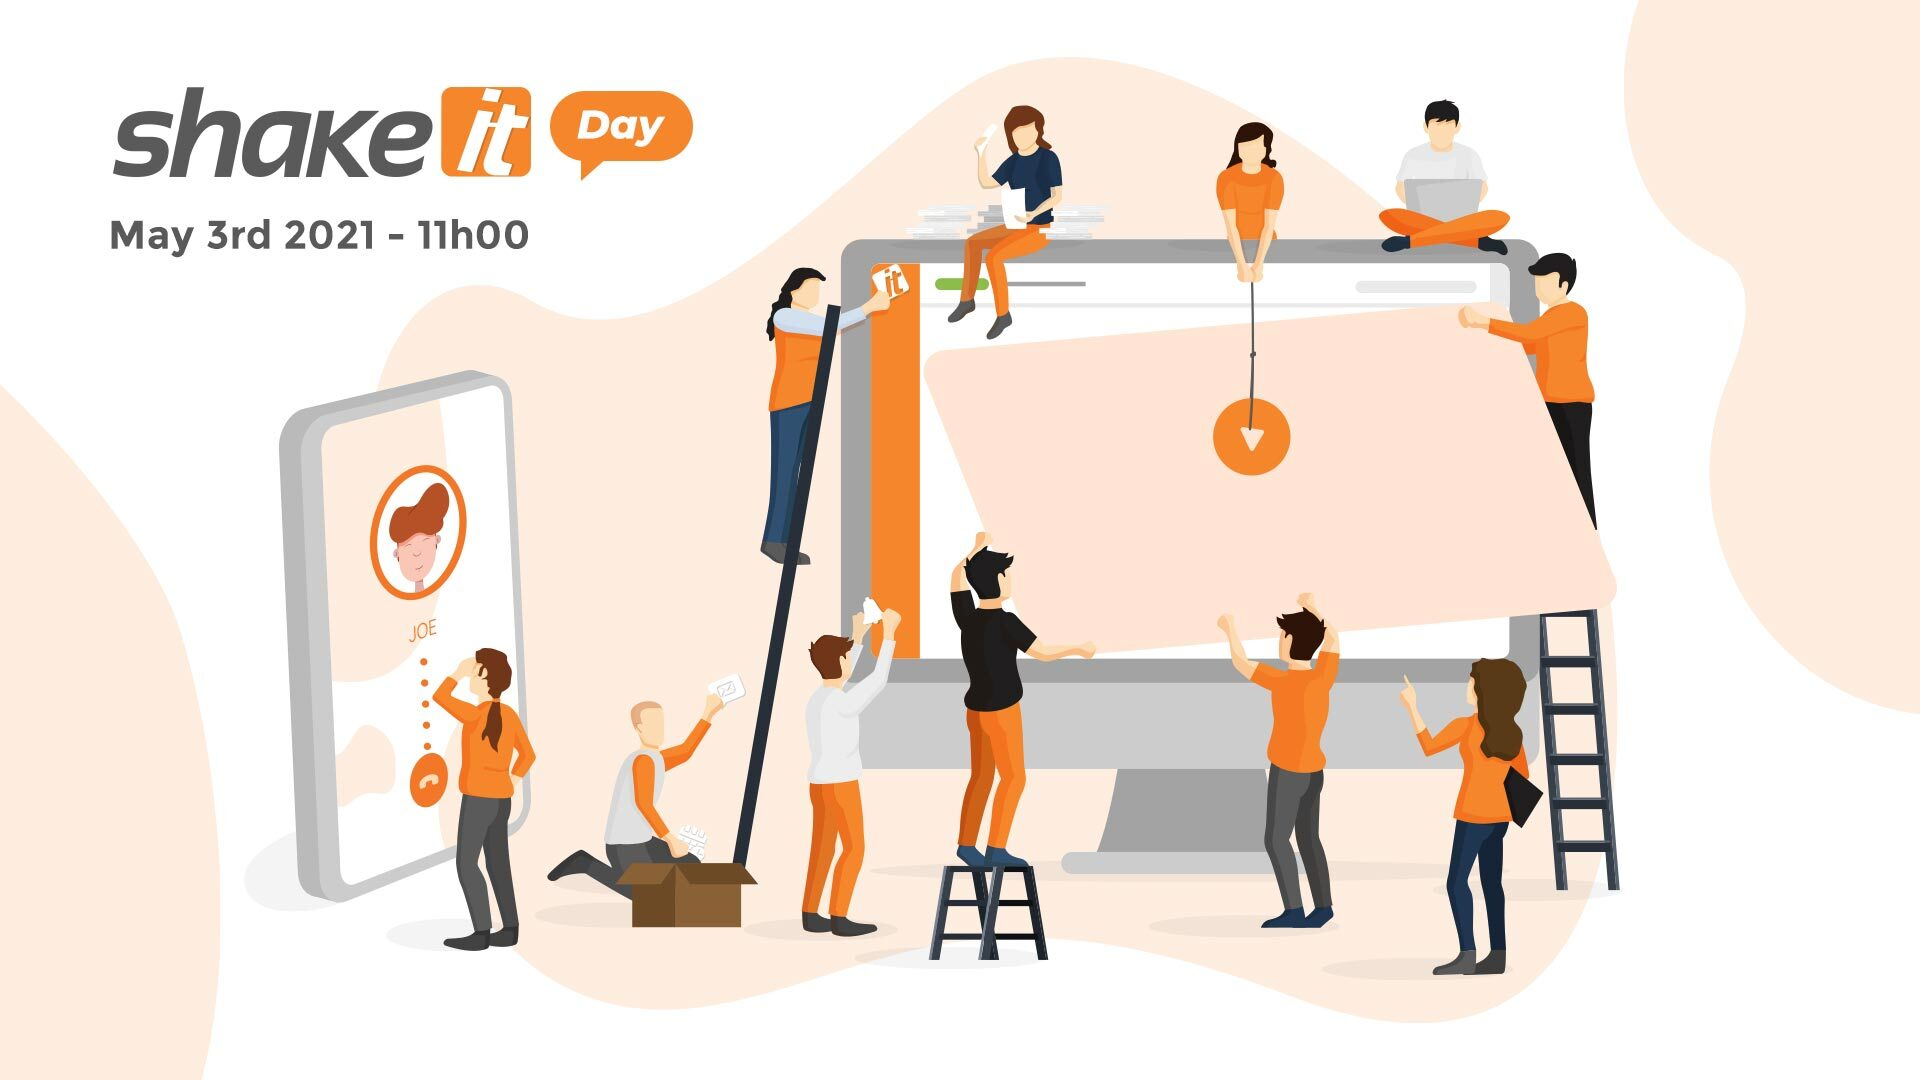 Key visual for Shake It Day 2021 - Illustration of the team building a platform